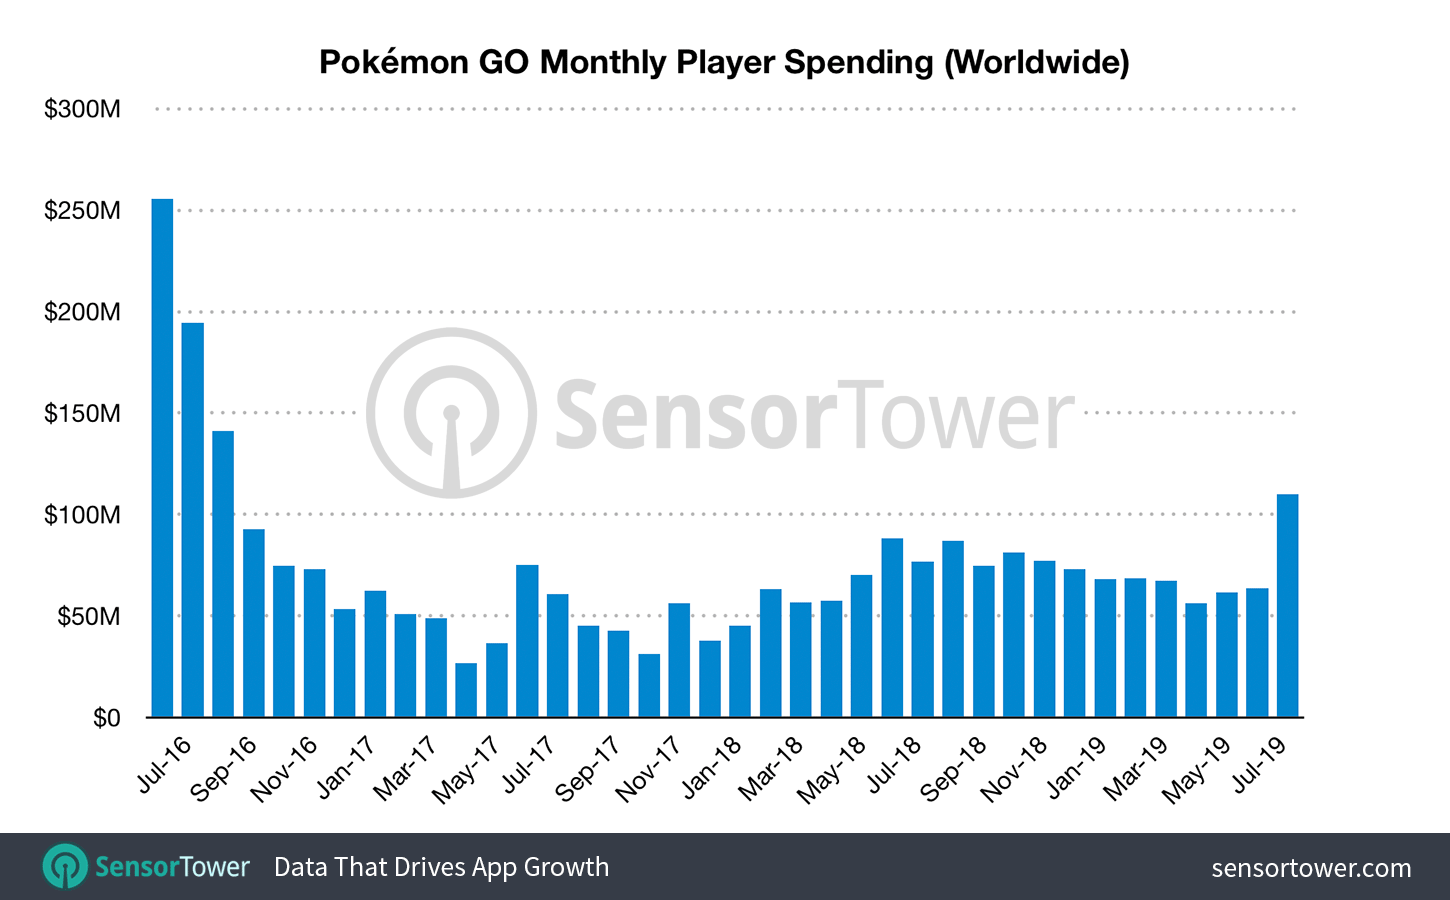 Pokémon GO revenue by month, to July 2019